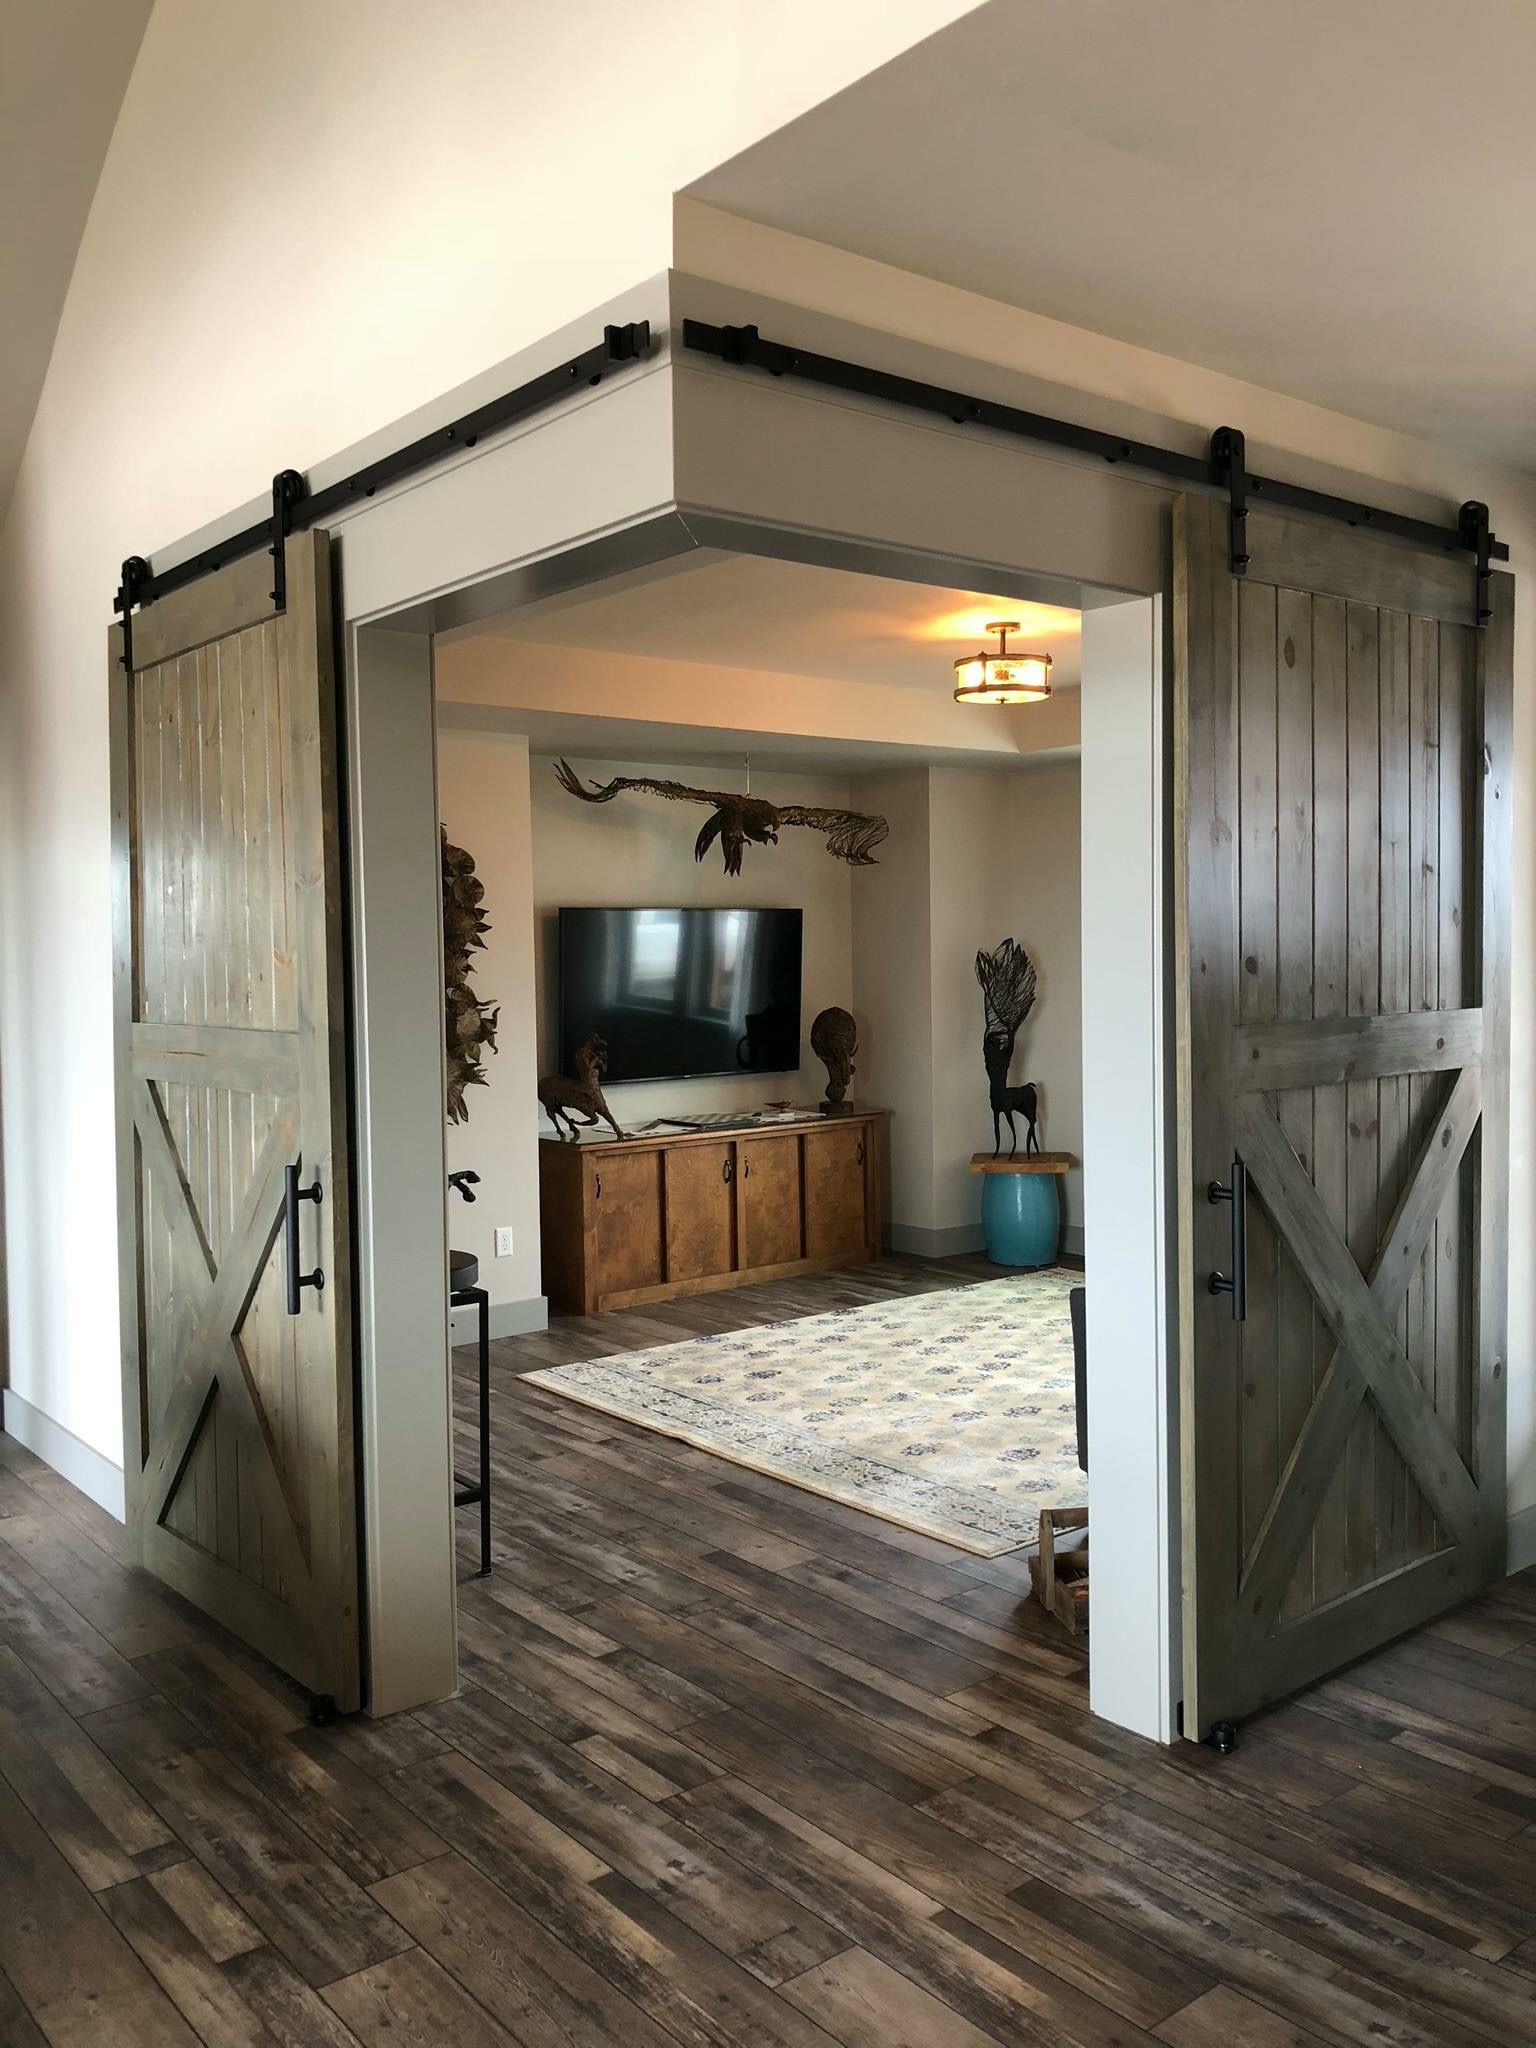 Pin by aundrea mullis on basement ideas in house home also rh pinterest